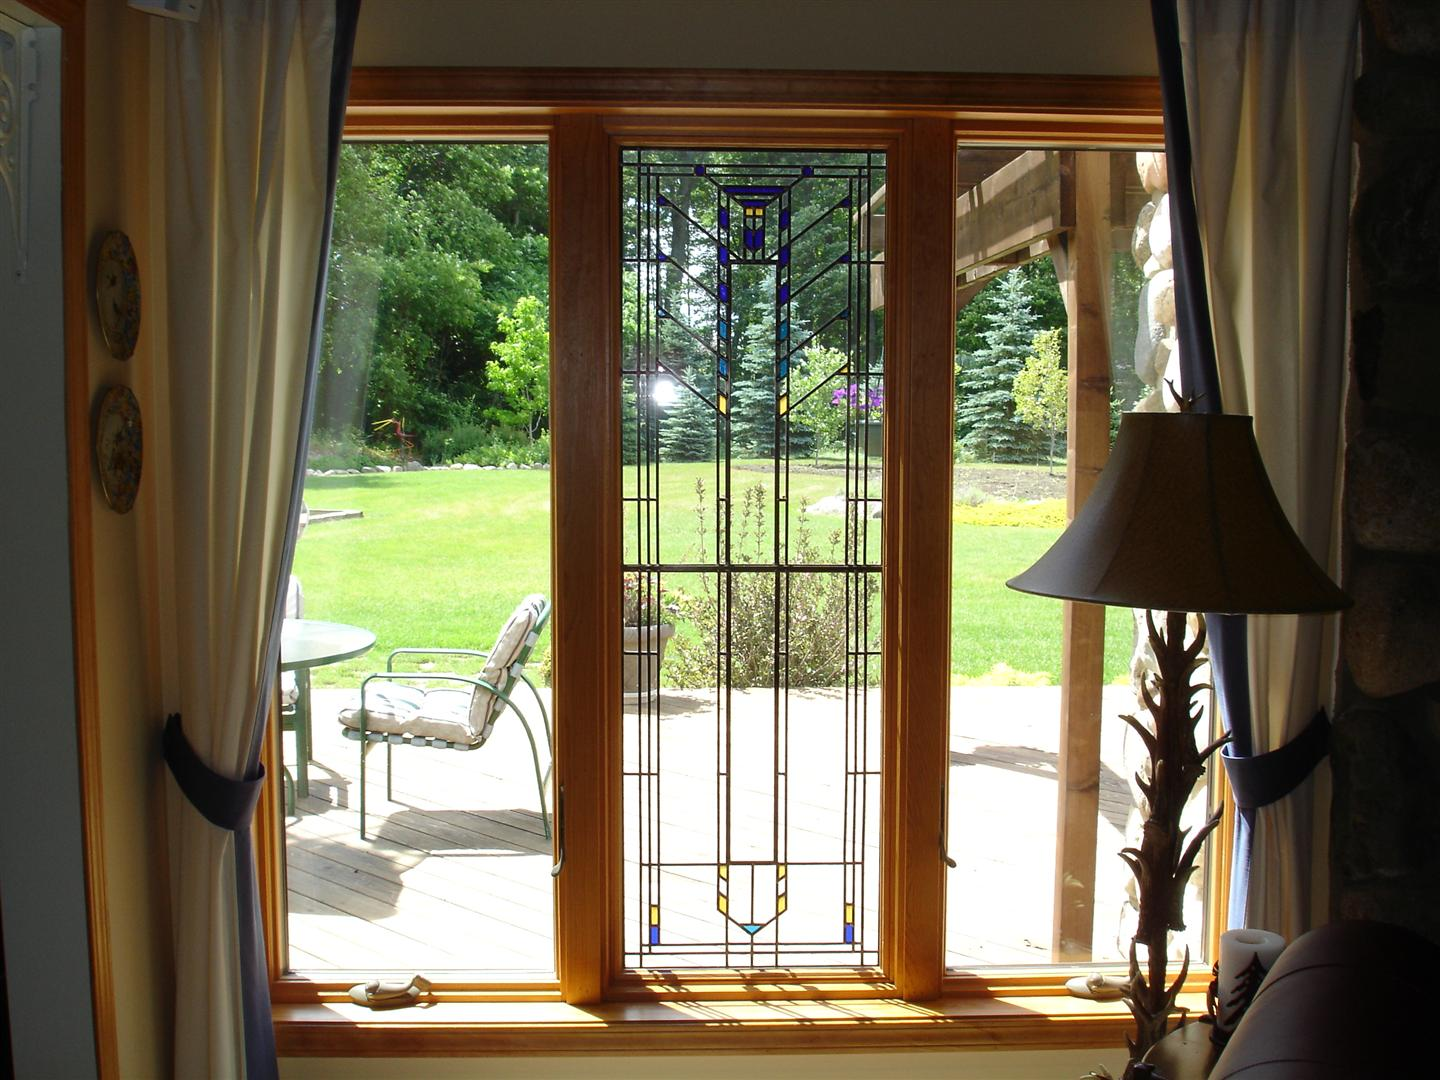 Anderson Patio Doors >> Andersen Windows and Doors - Sun Home Improvement